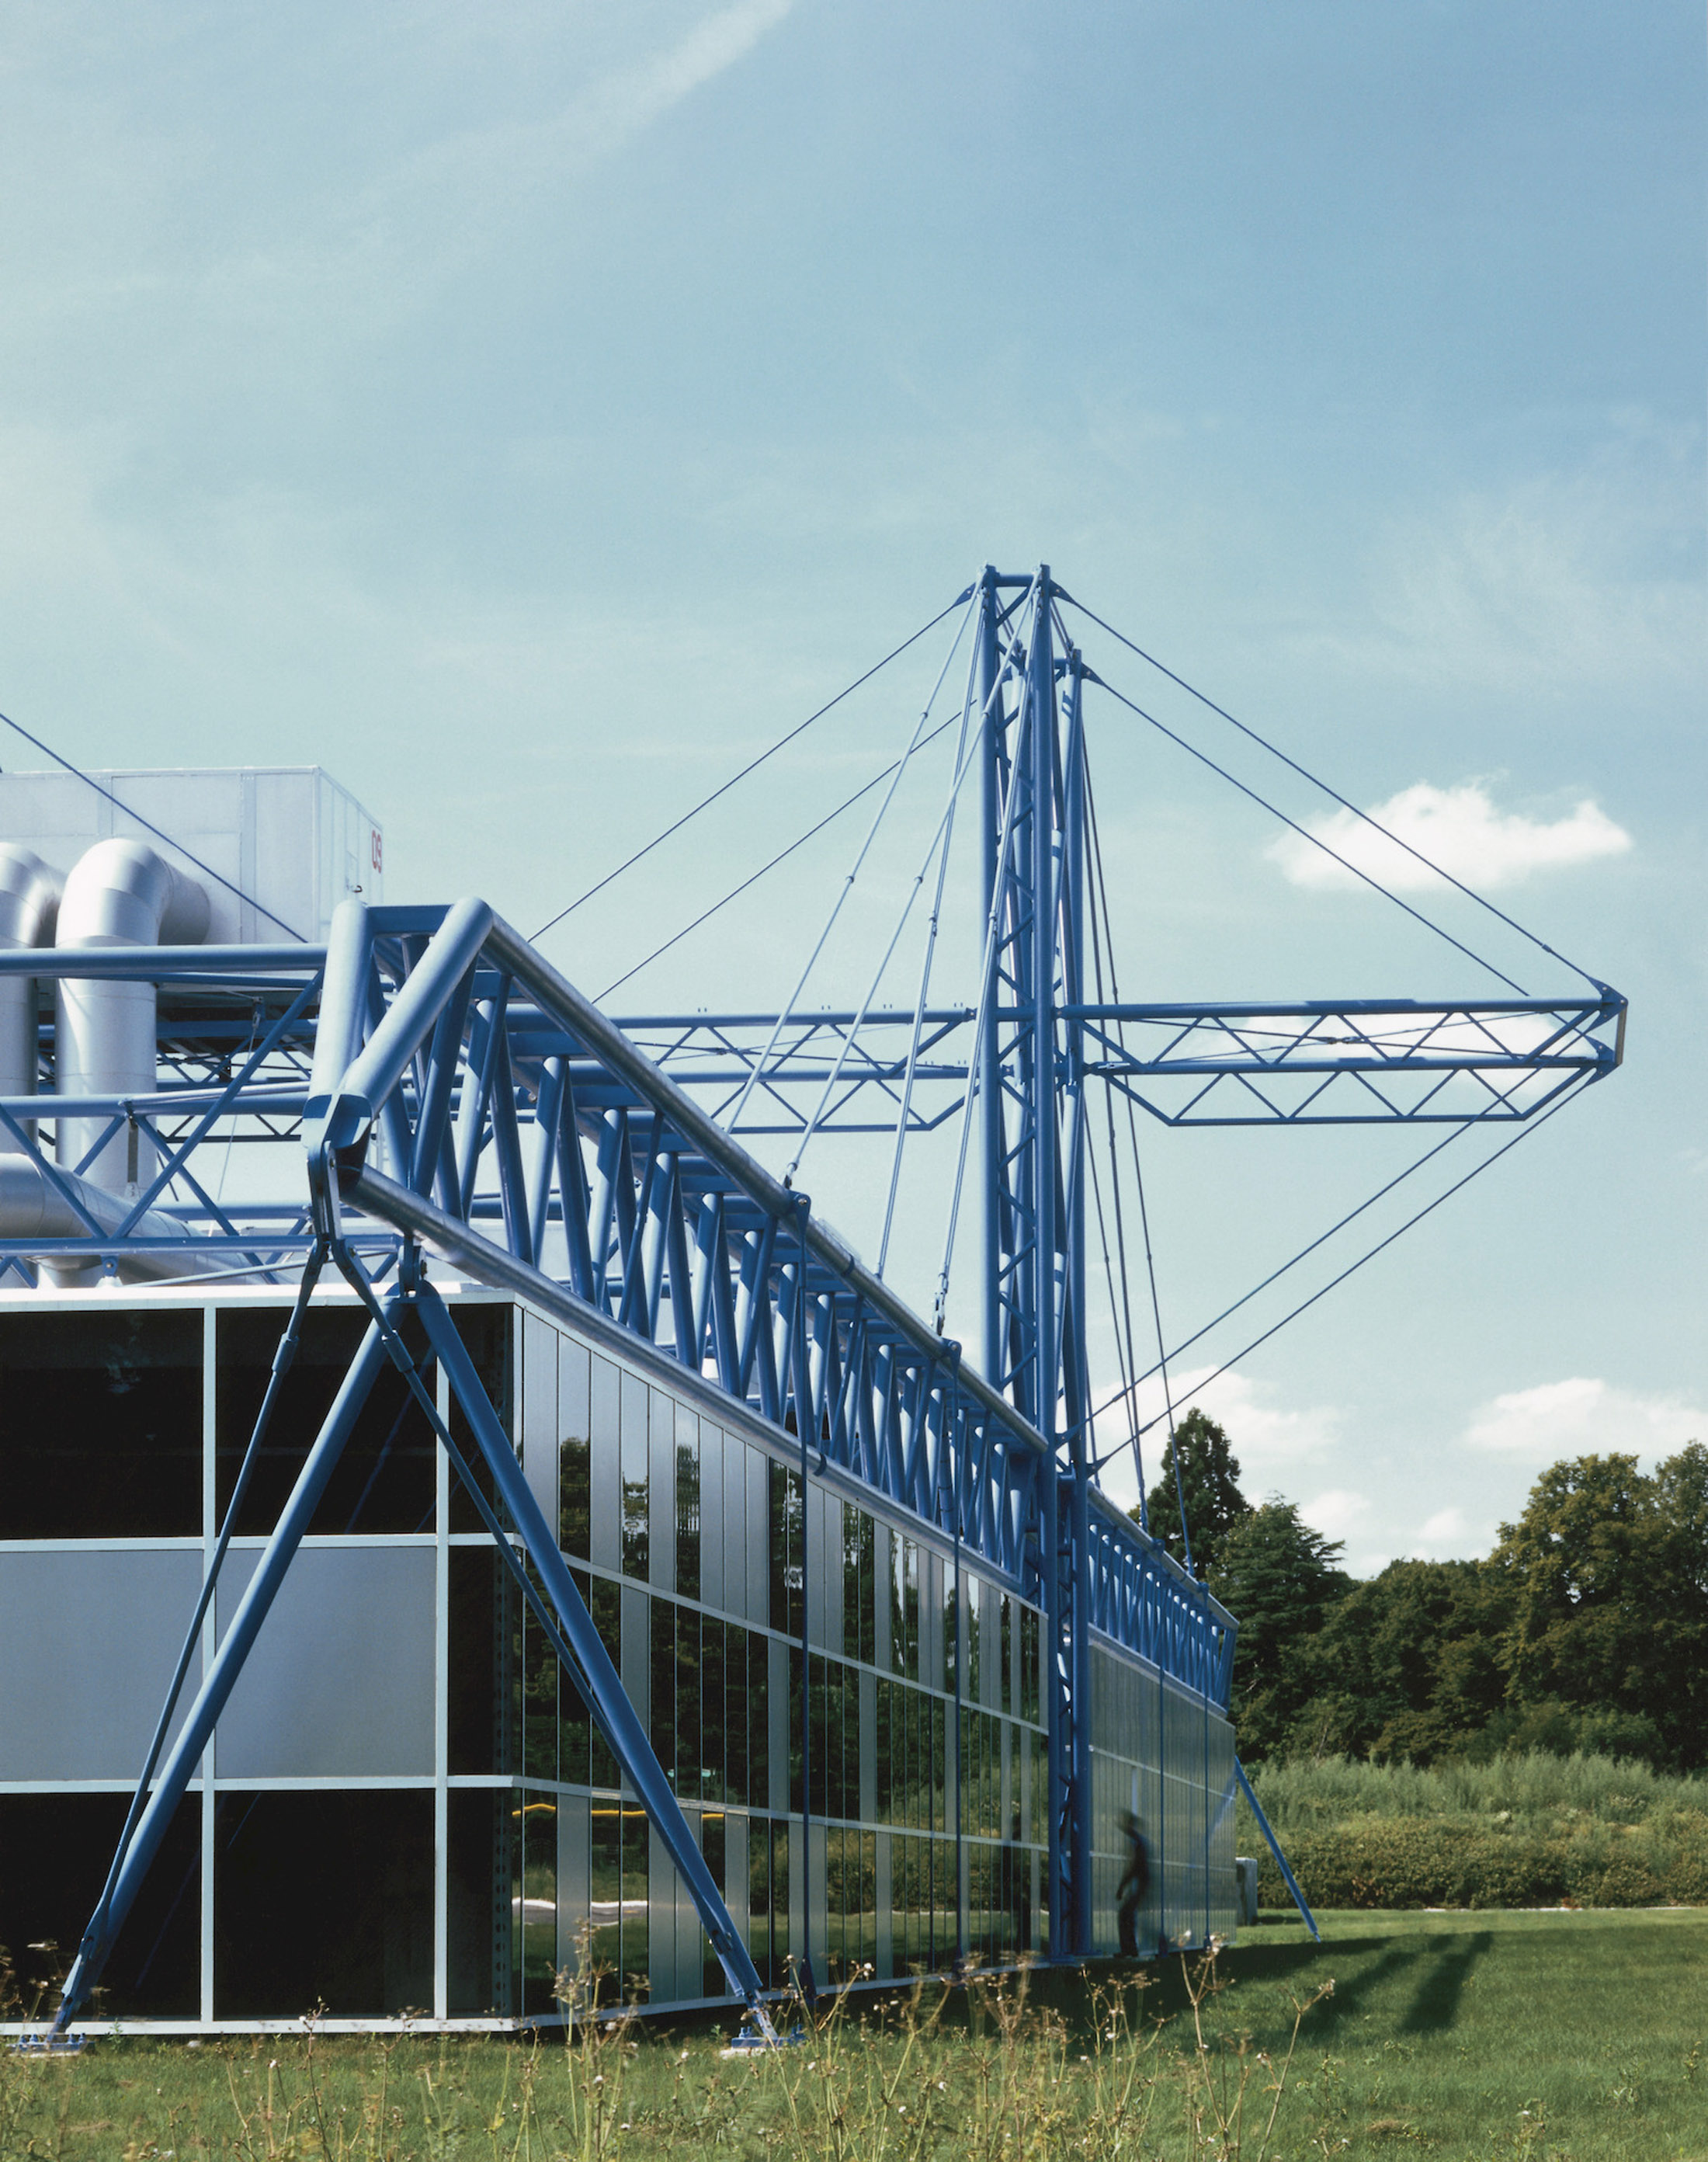 A richard rogers designed factory with blue steel exposed tower